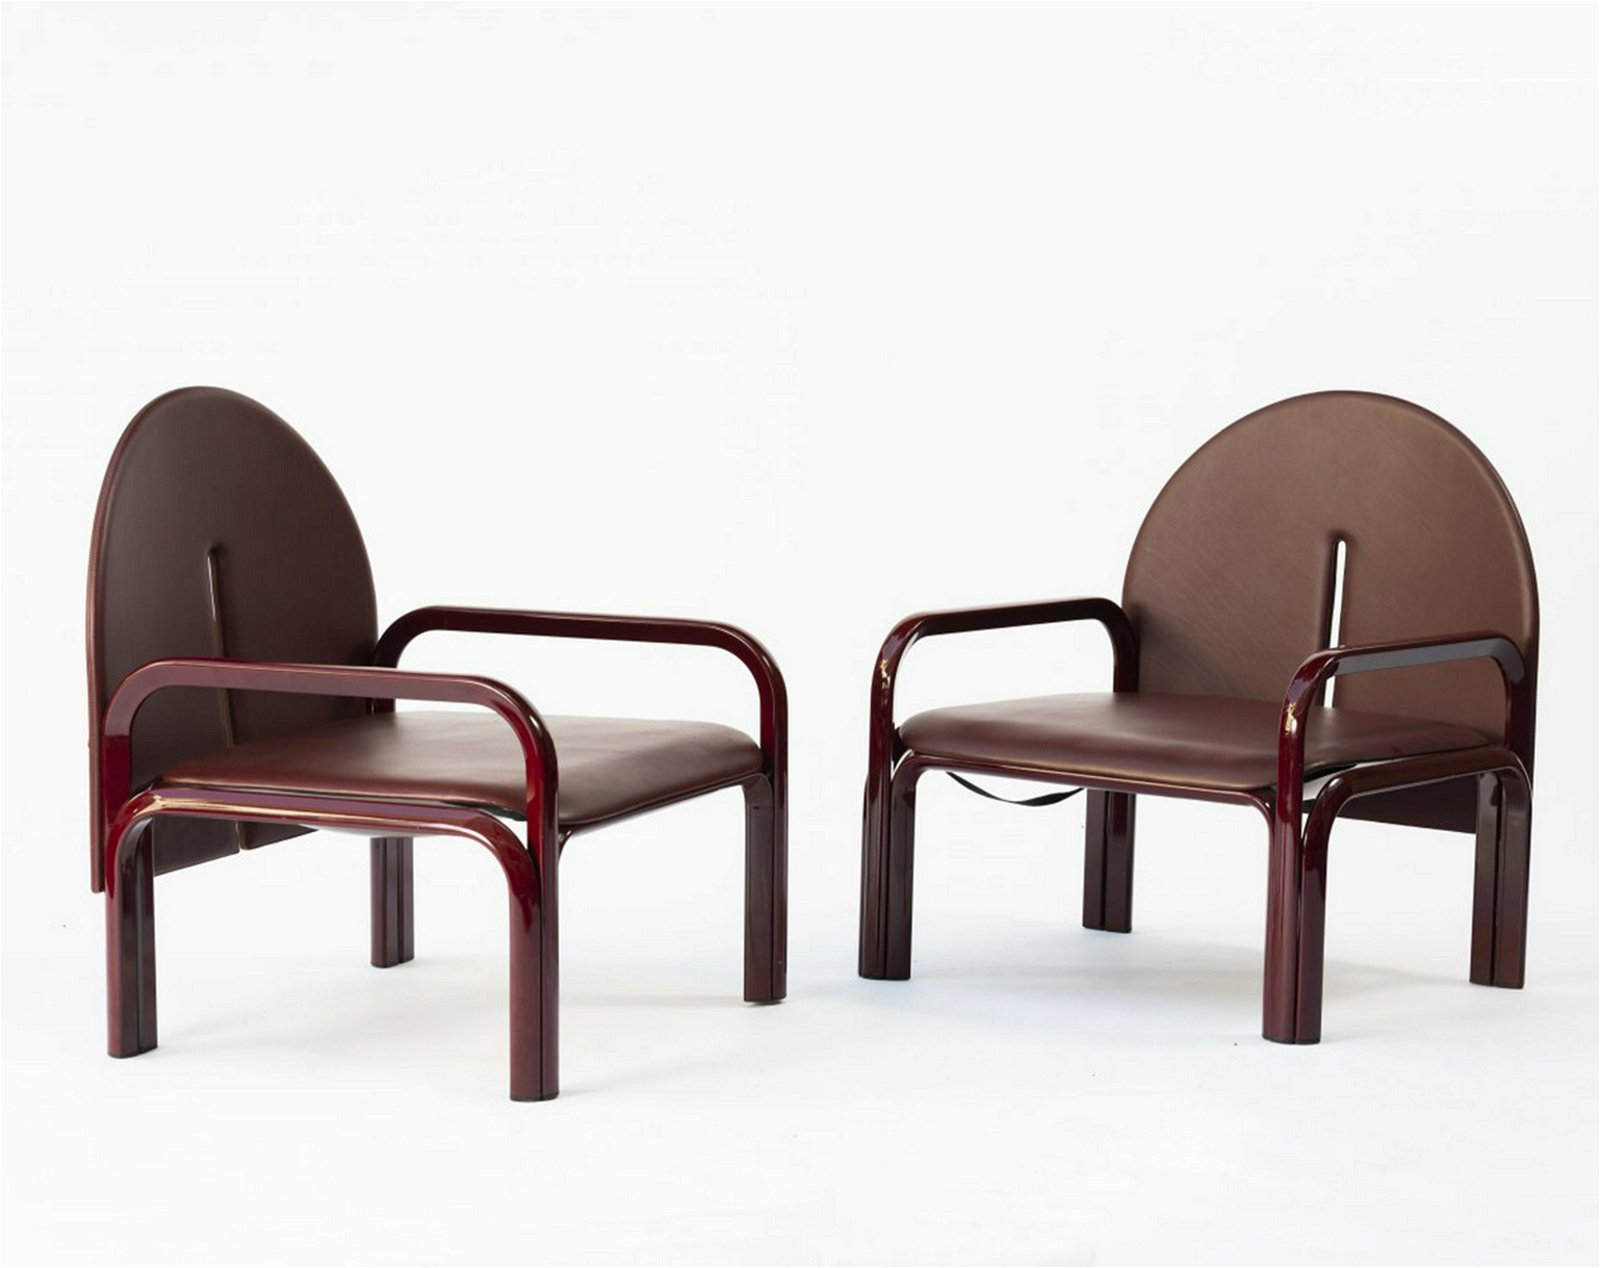 Gae Aulenti, Two '54 L' armchairs, 1976